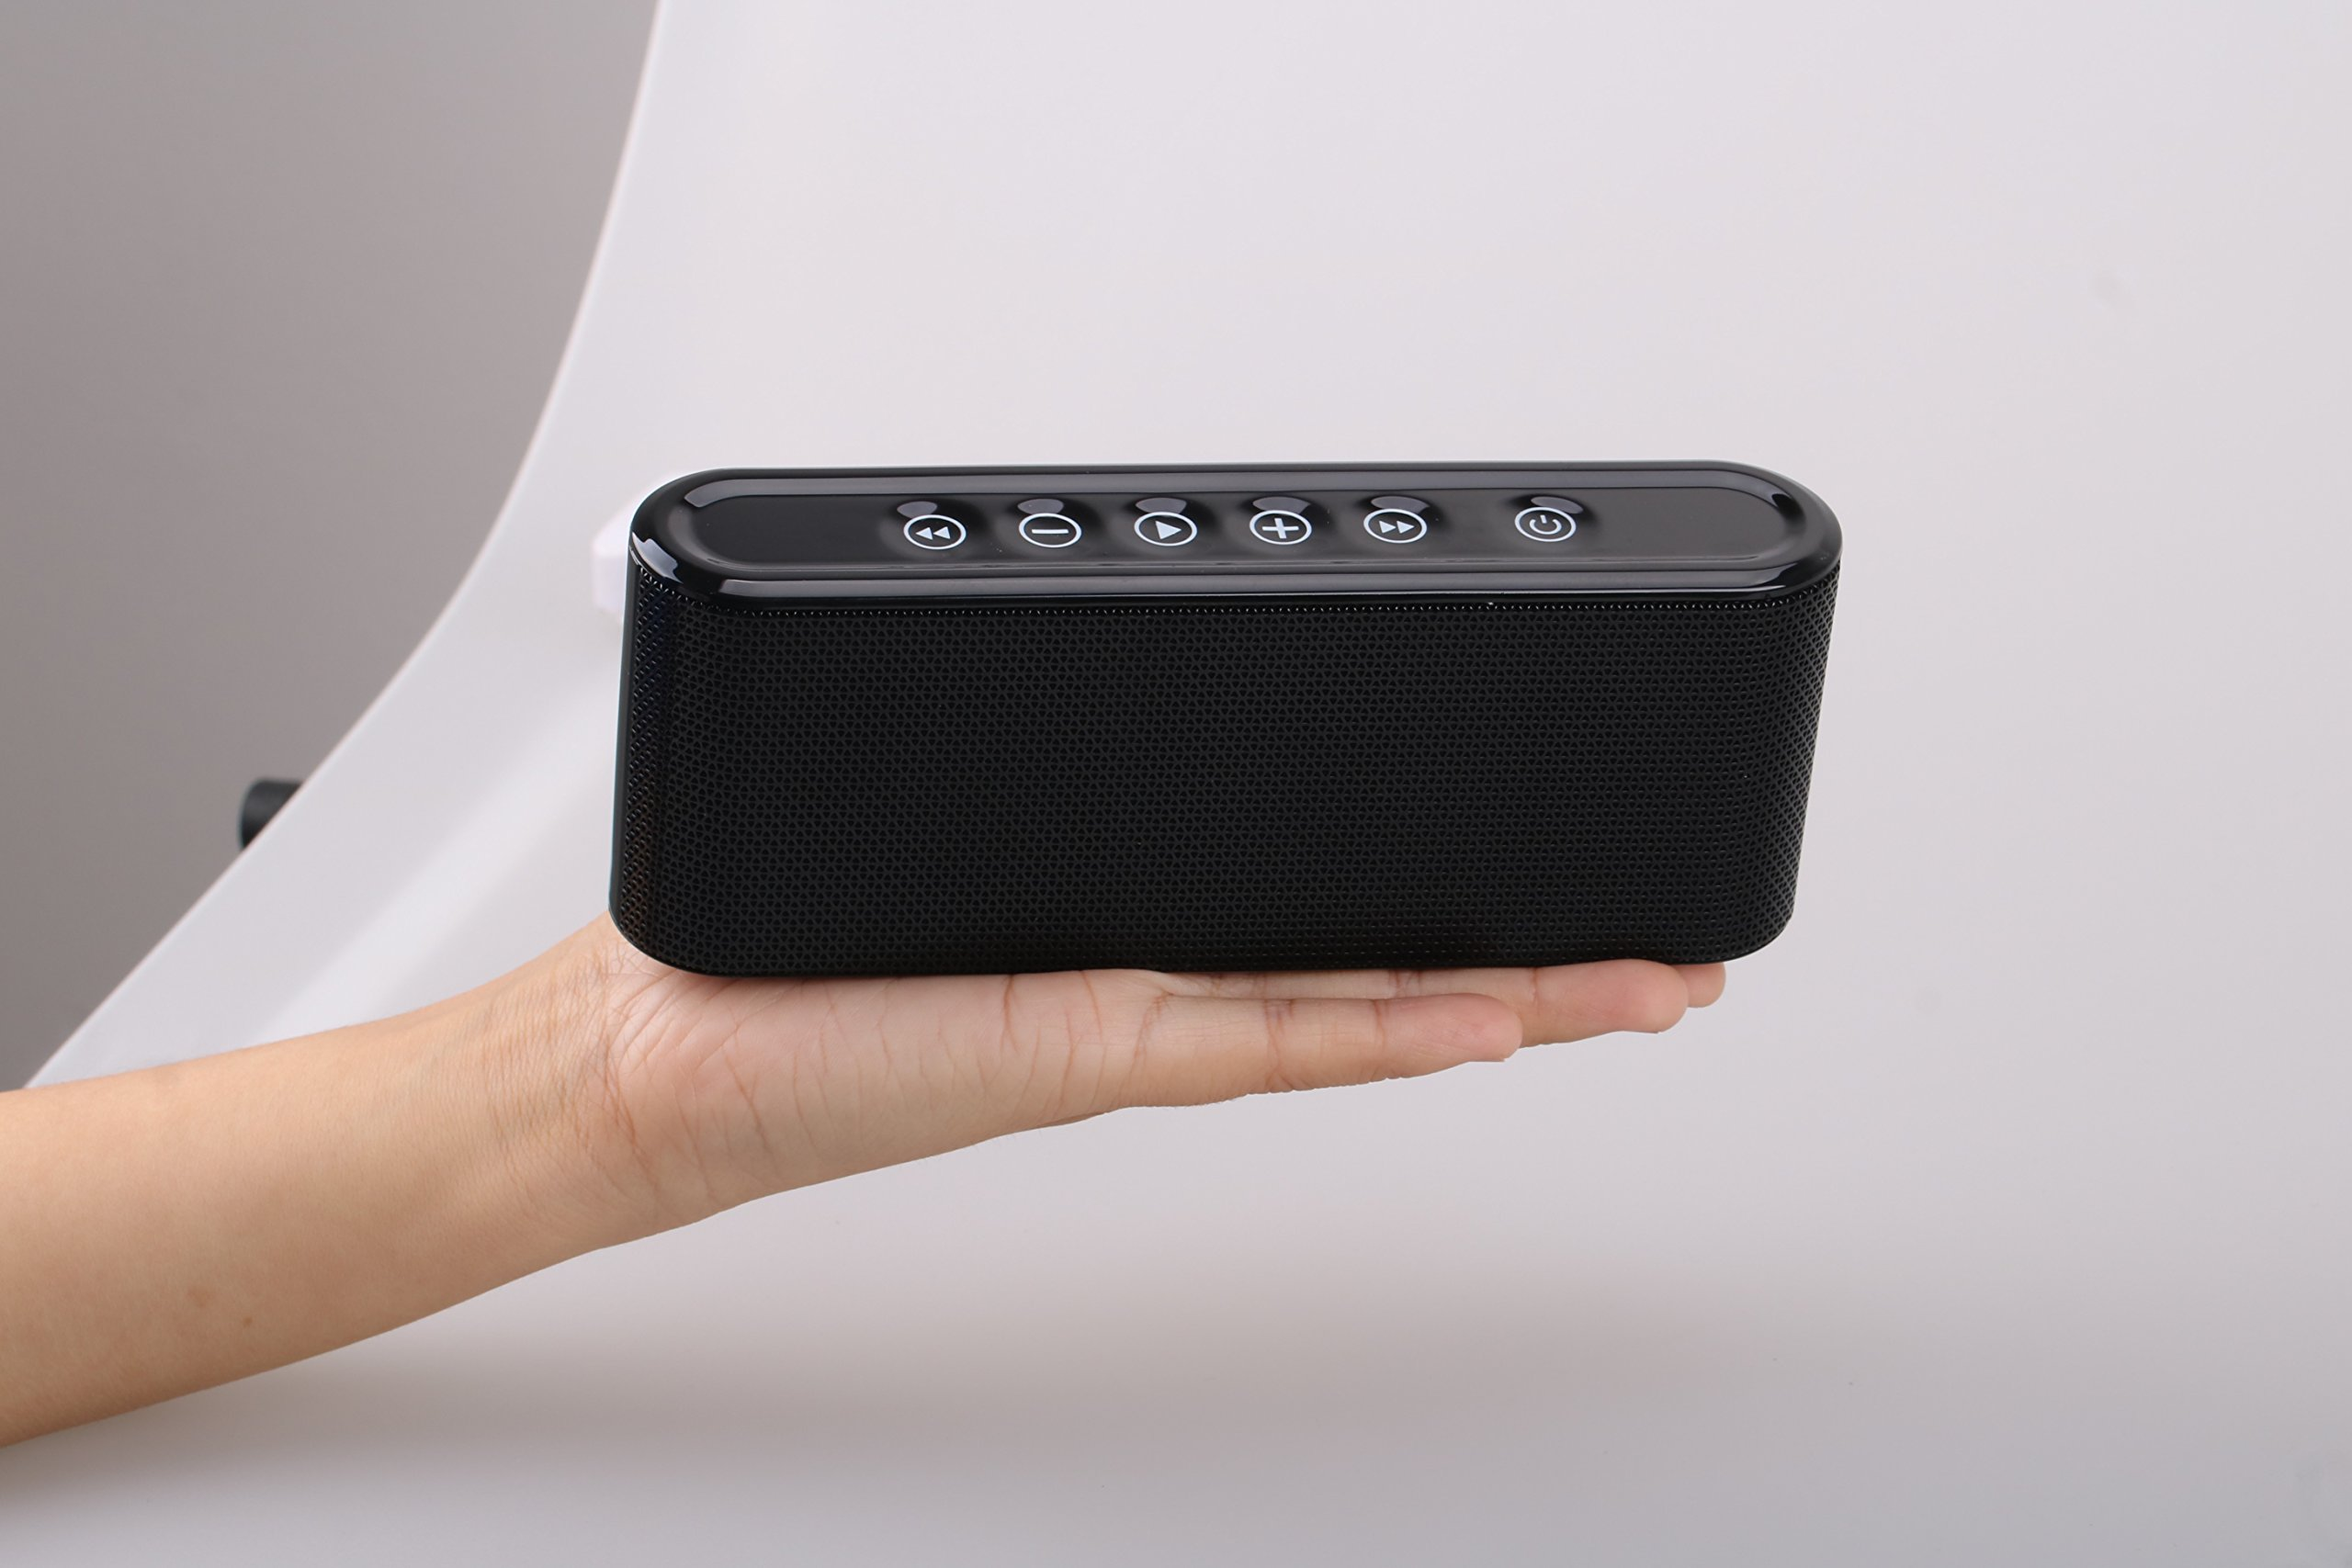 Bluetooth Speakers, 6W Touch Metal Speakers, Mini Portable Bluetooth 4.2 Wireless with Super Bass, Treble Stereo Subwoofer, Support TF Card, USB Disk, 3.5mm AUX Input,Mobile Computer Accessories by WORENMI (Image #9)